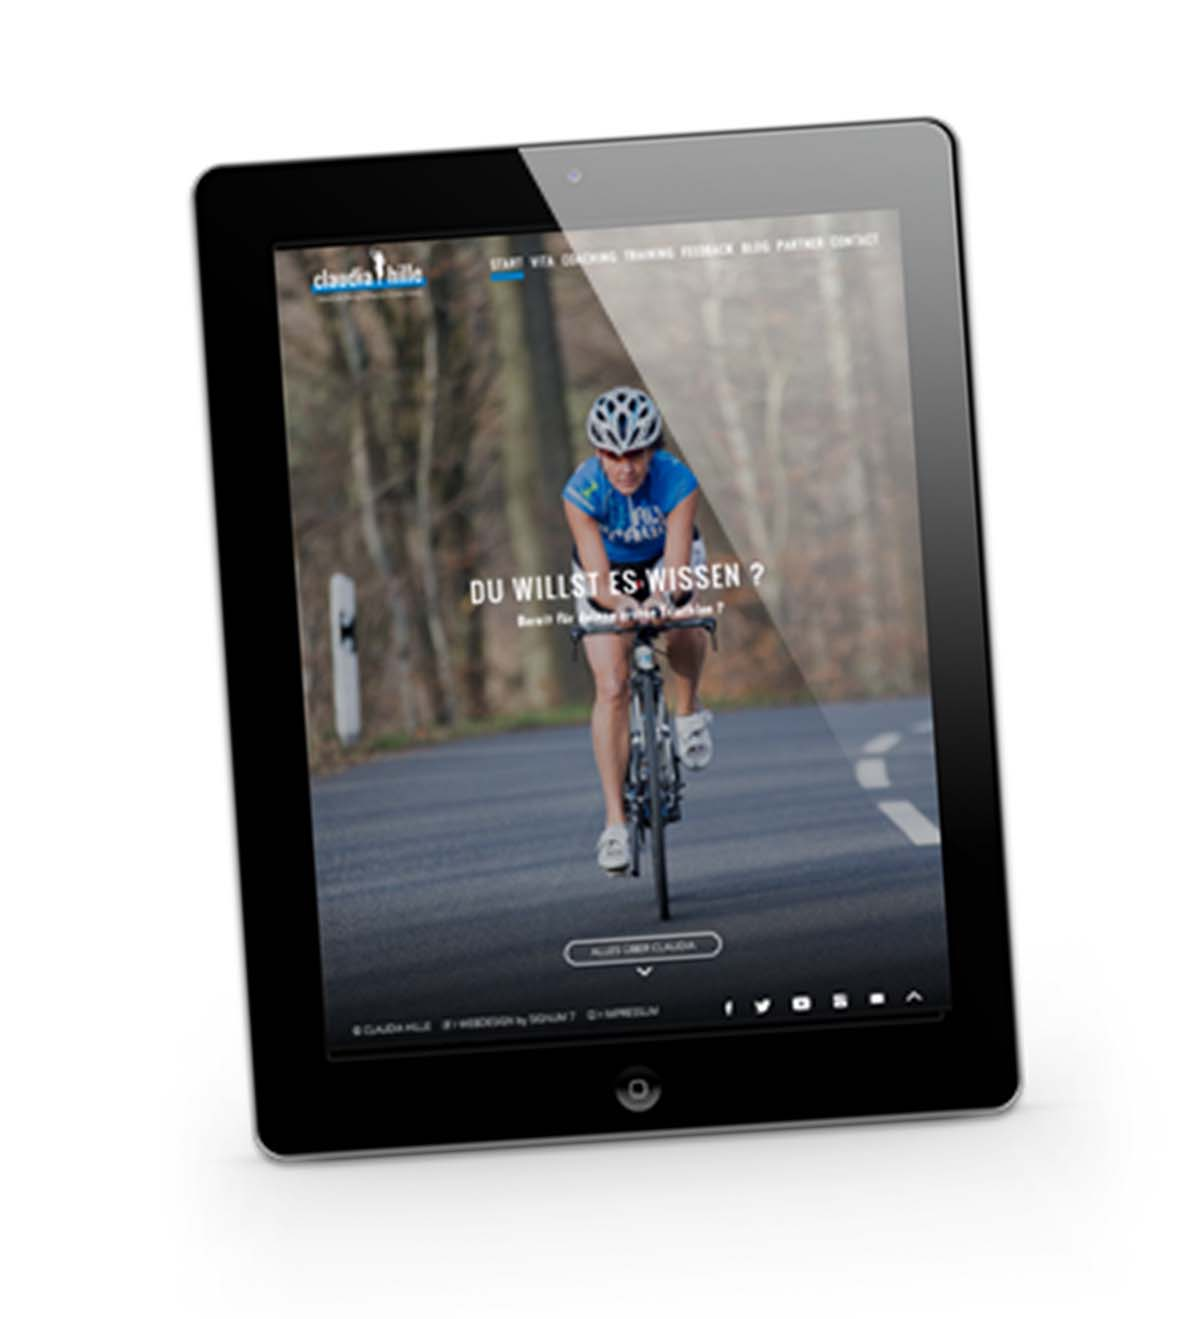 wd_claudia_iPad_bike